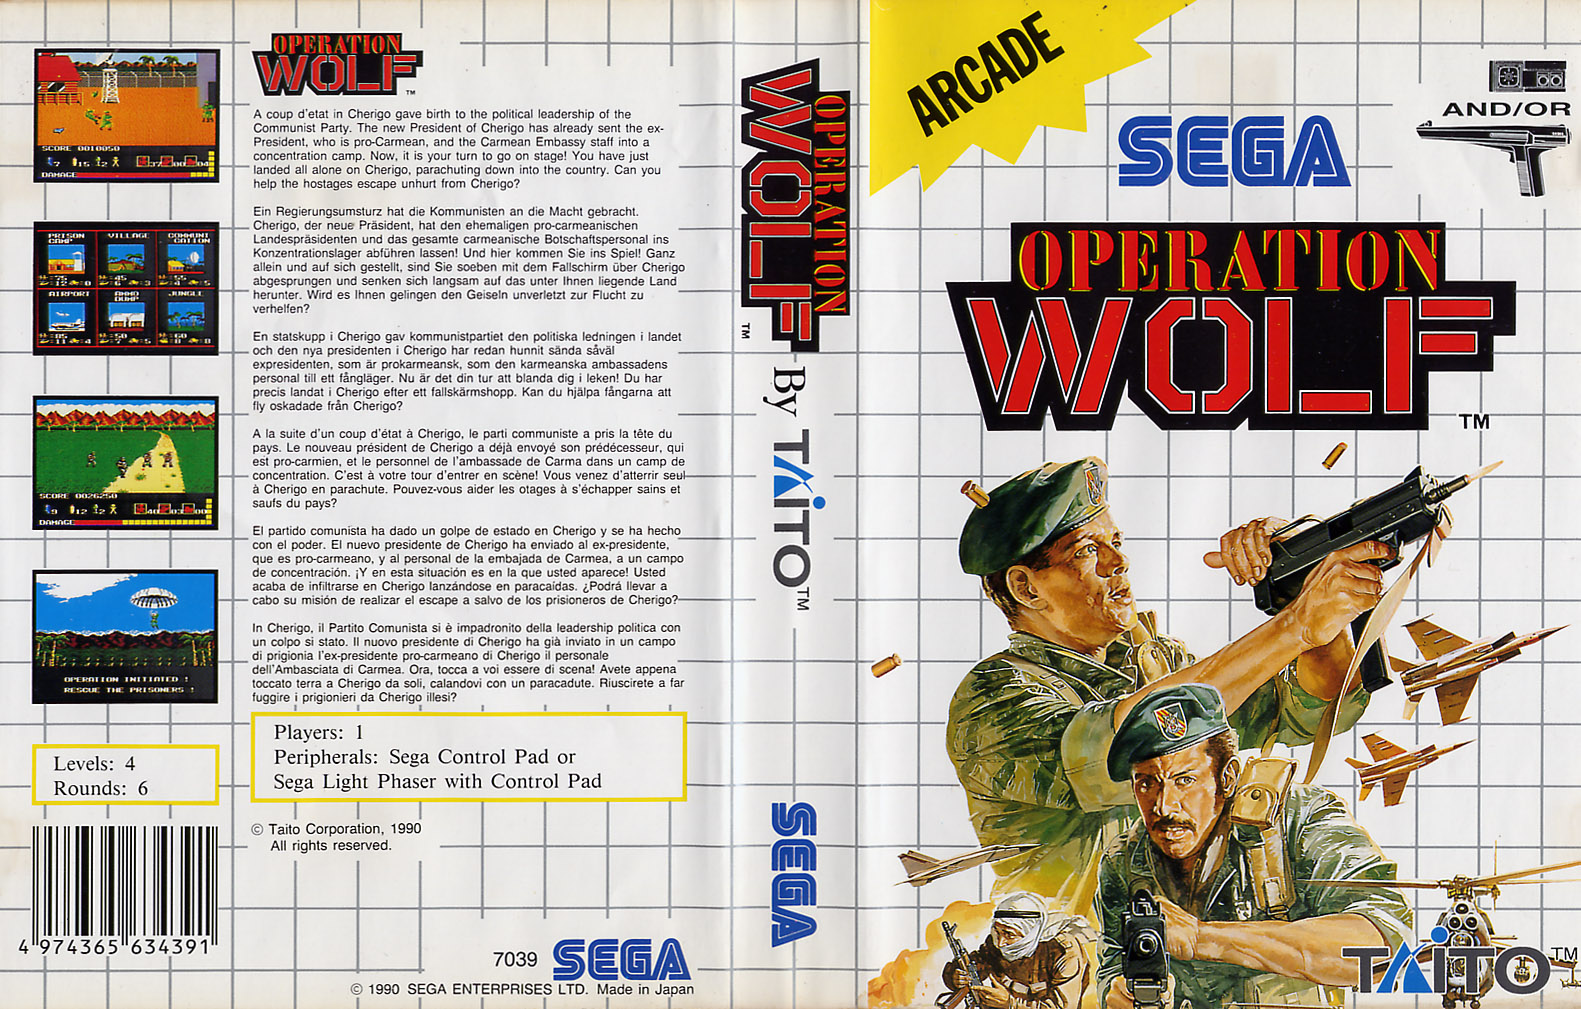 http://www.smspower.org/uploads/Scans/OperationWolf-SMS-EU-NoR-6Langs.jpg